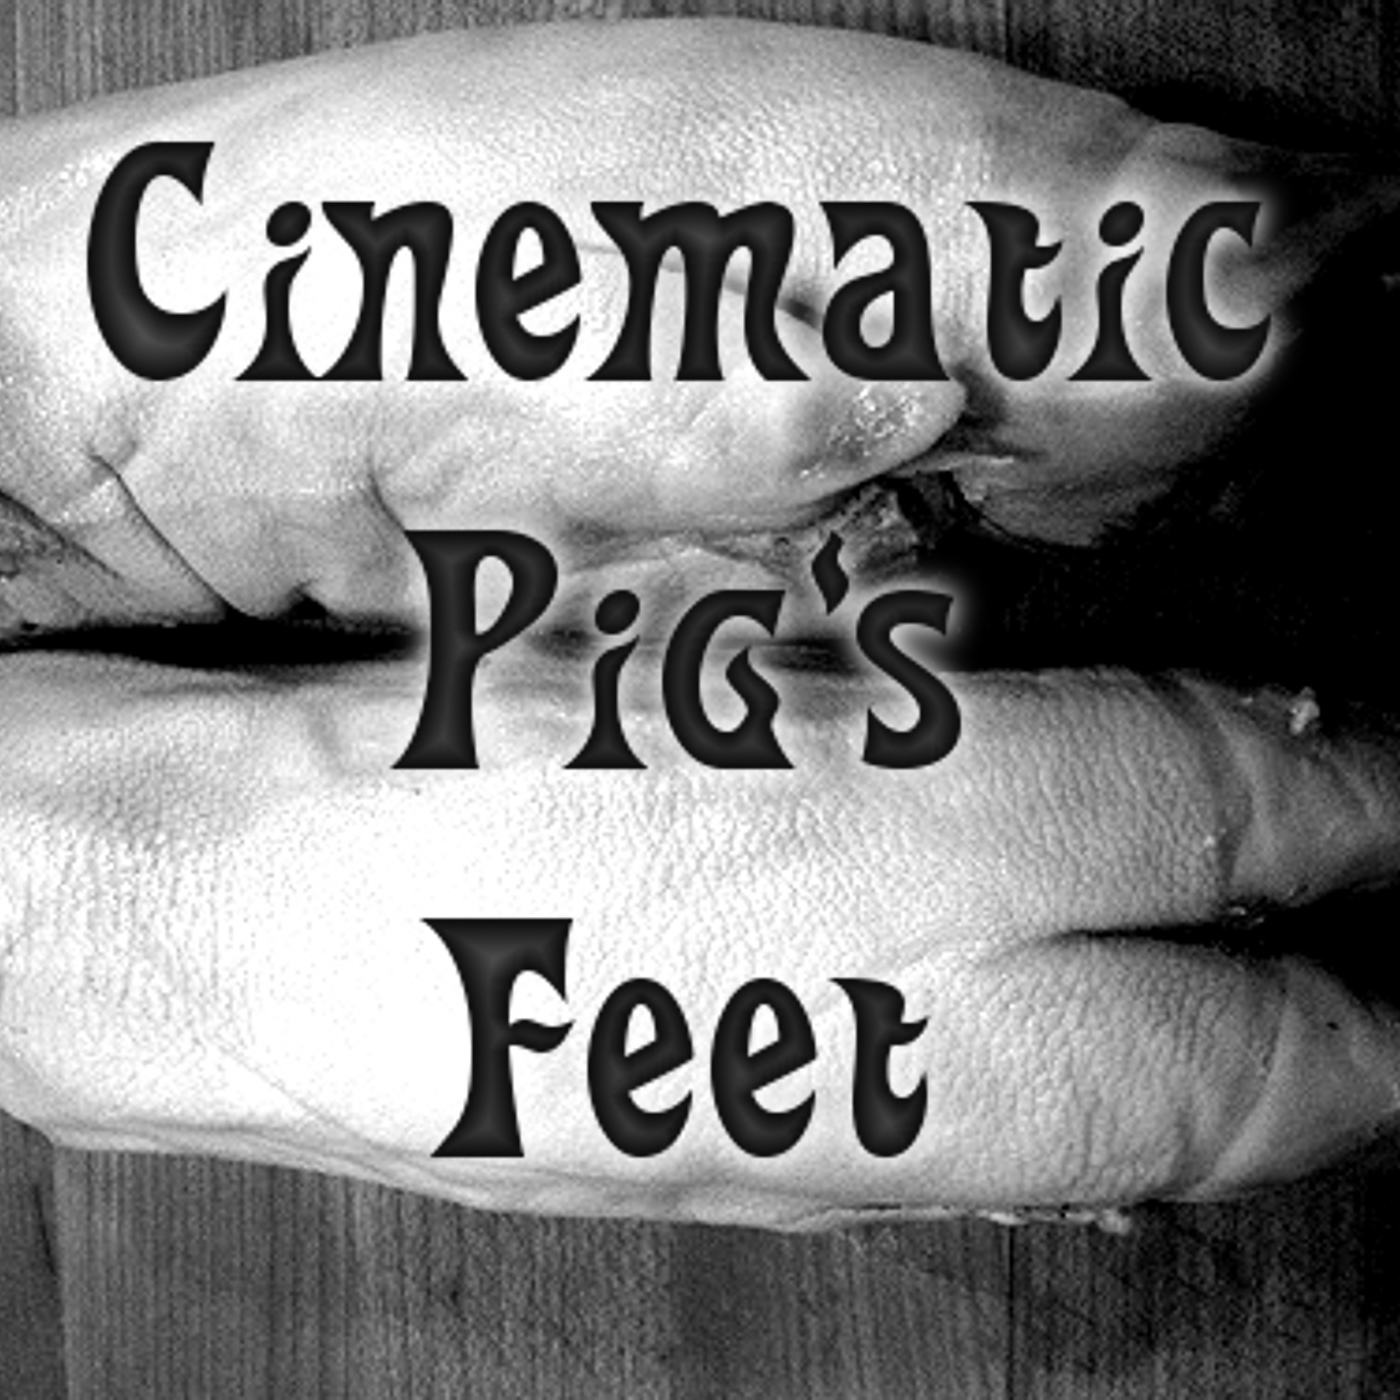 Cinematic Pig's Feet